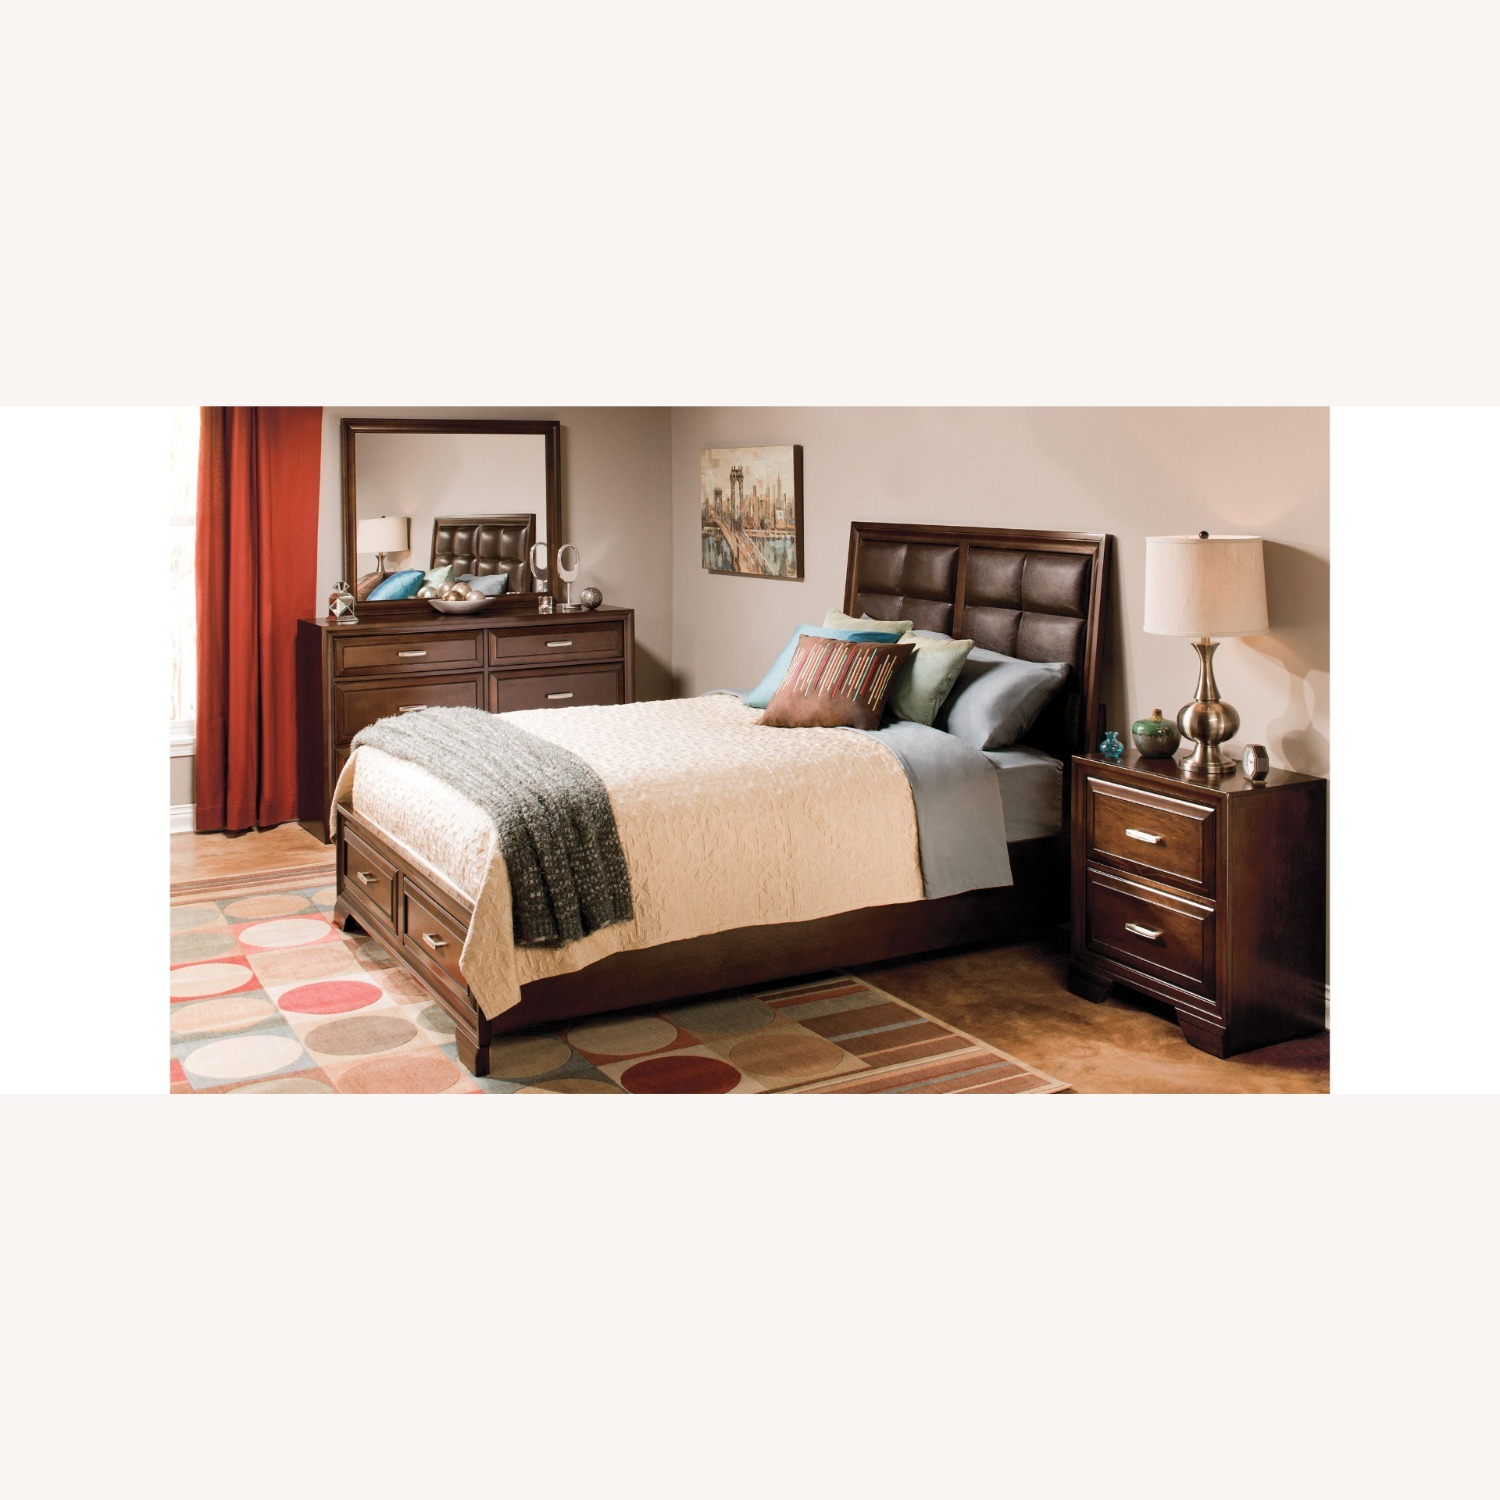 Raymour & Flanigan Levine Queen Storage Bed - image-1